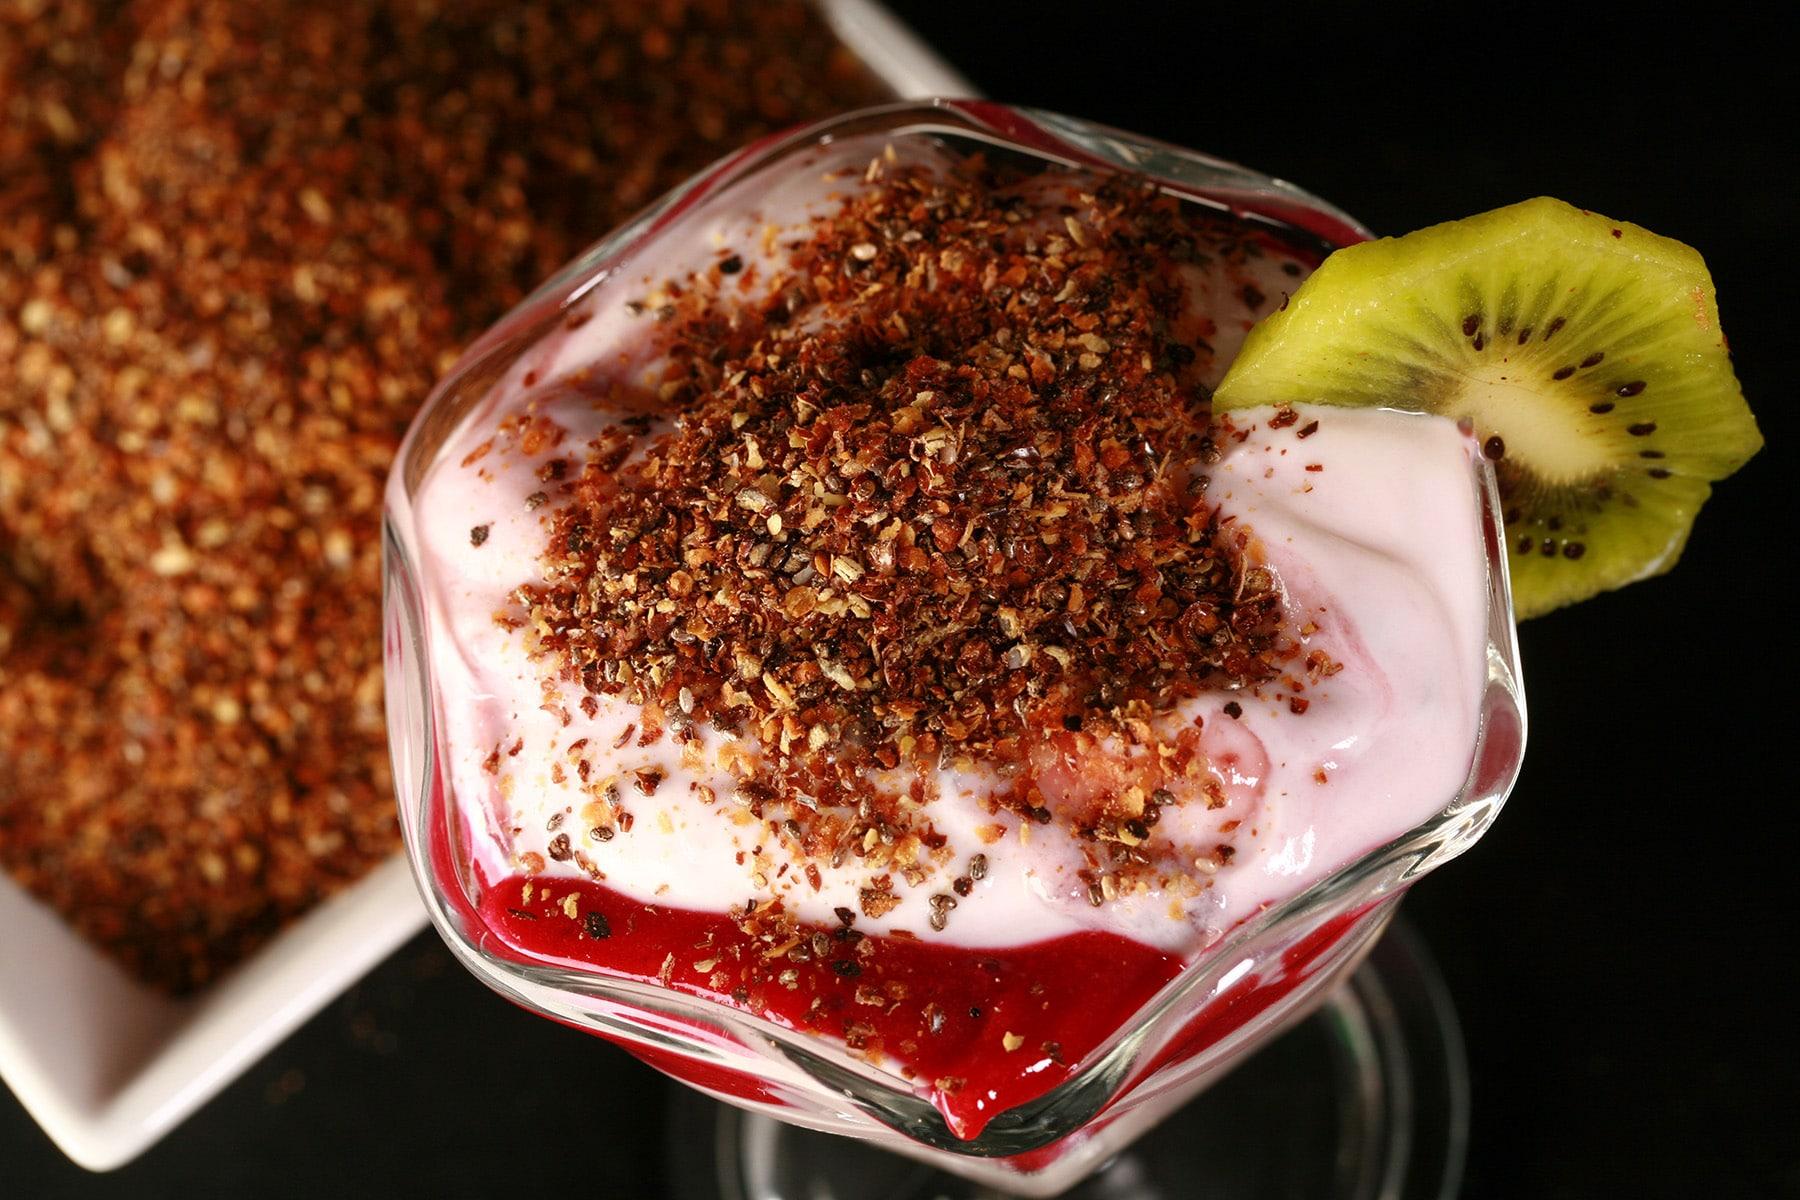 A parfait made with vanilla yogurt, blackcurrant curd, and our yogurt topping.